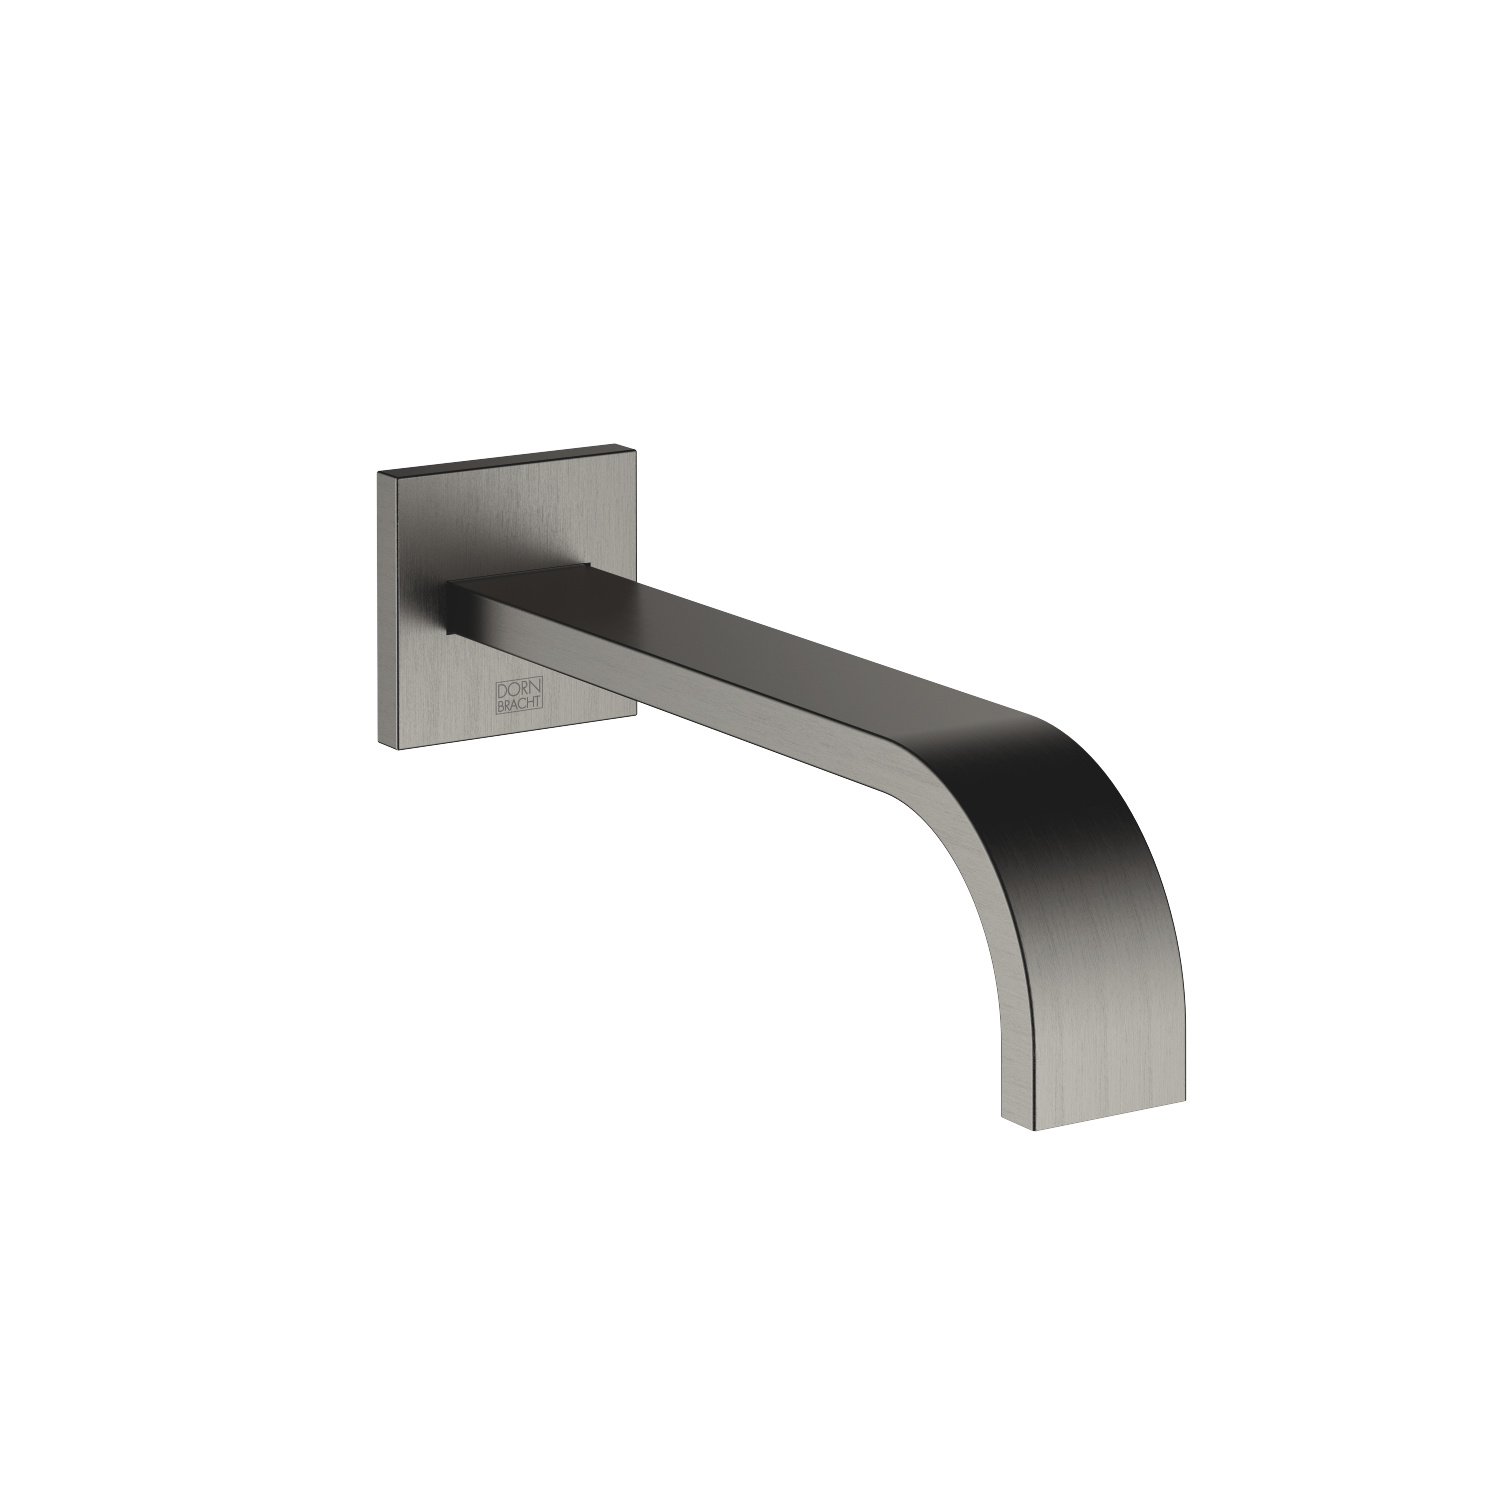 bath spout for wall mounting - Dark Platinum matt